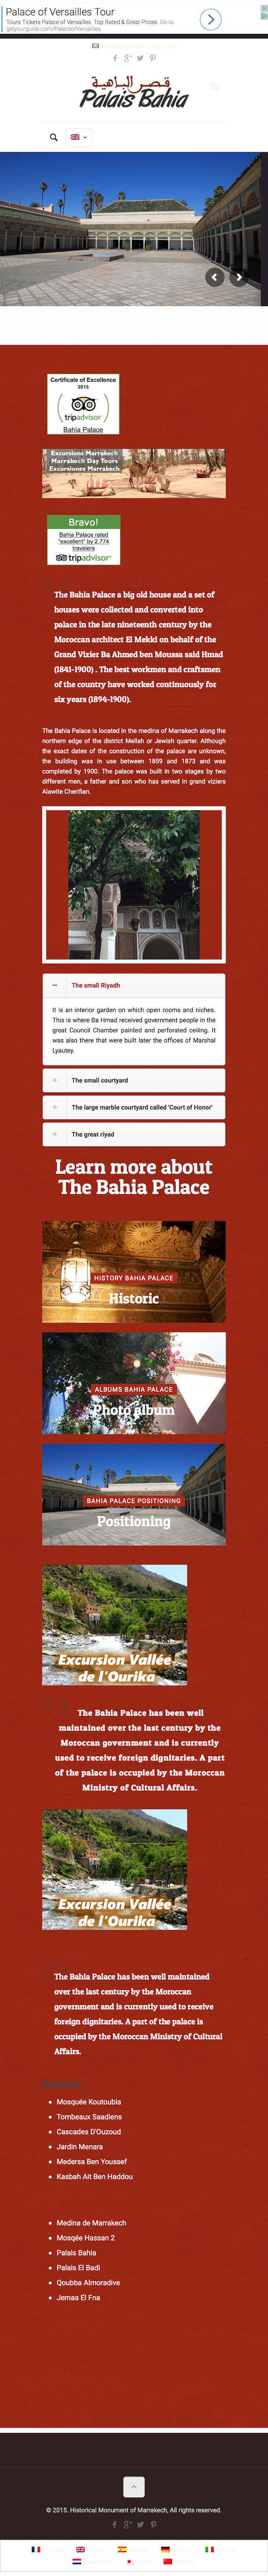 The Bahia Palace is located in the medina of Marrakech along the northern edge of the district Mellah or Jewish quarter.